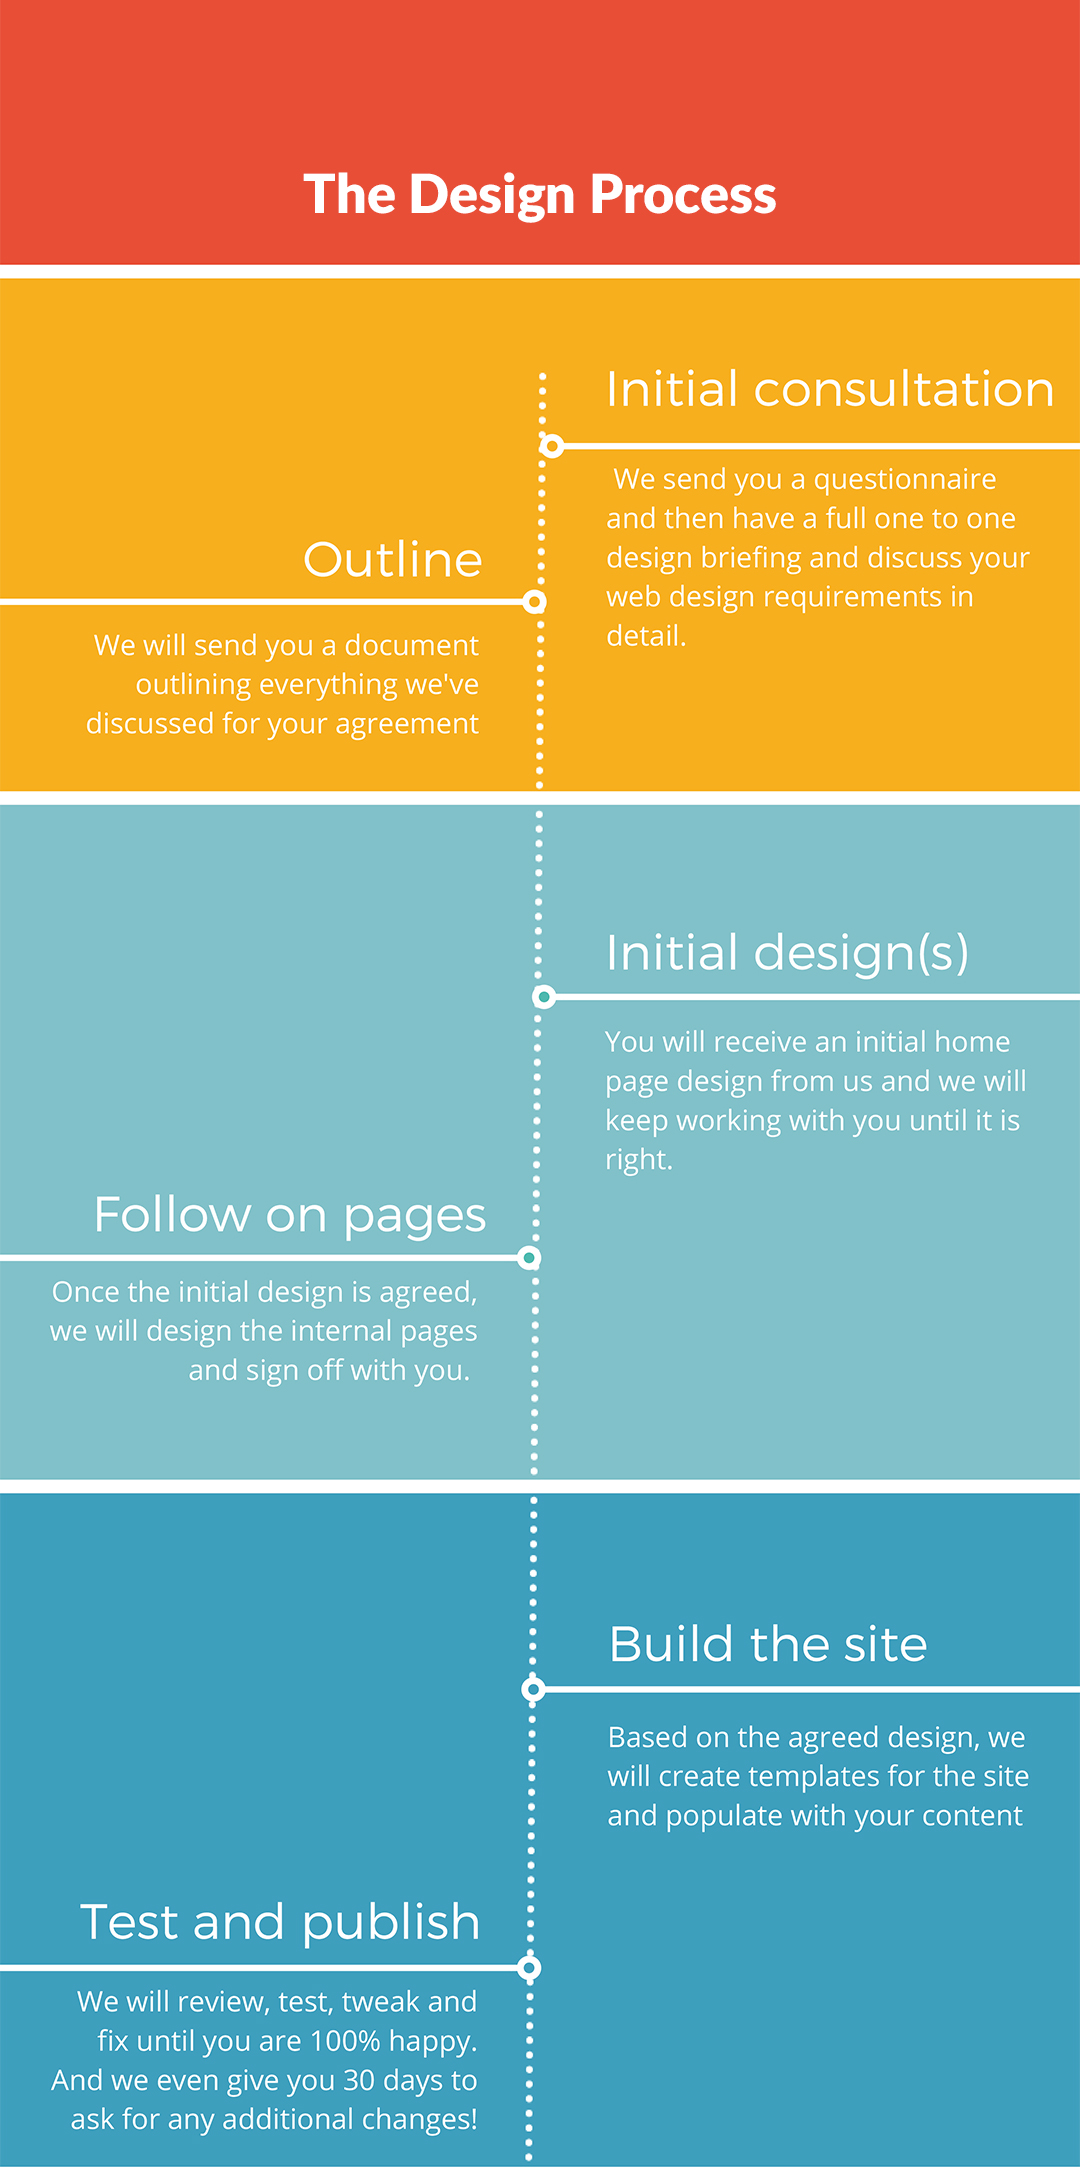 Springmedia design process